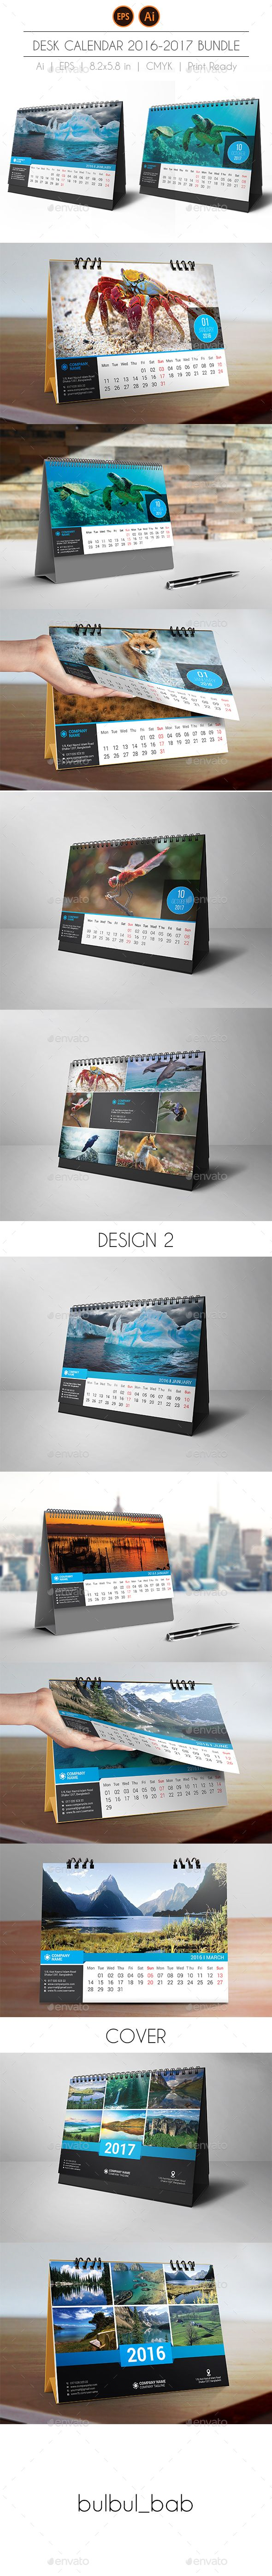 Desk Calendar 2017 Bundle Template Vector EPS, AI Illustrator. Download here: https://graphicriver.net/item/desk-calendar-2017-bundle/16653601?ref=ksioks